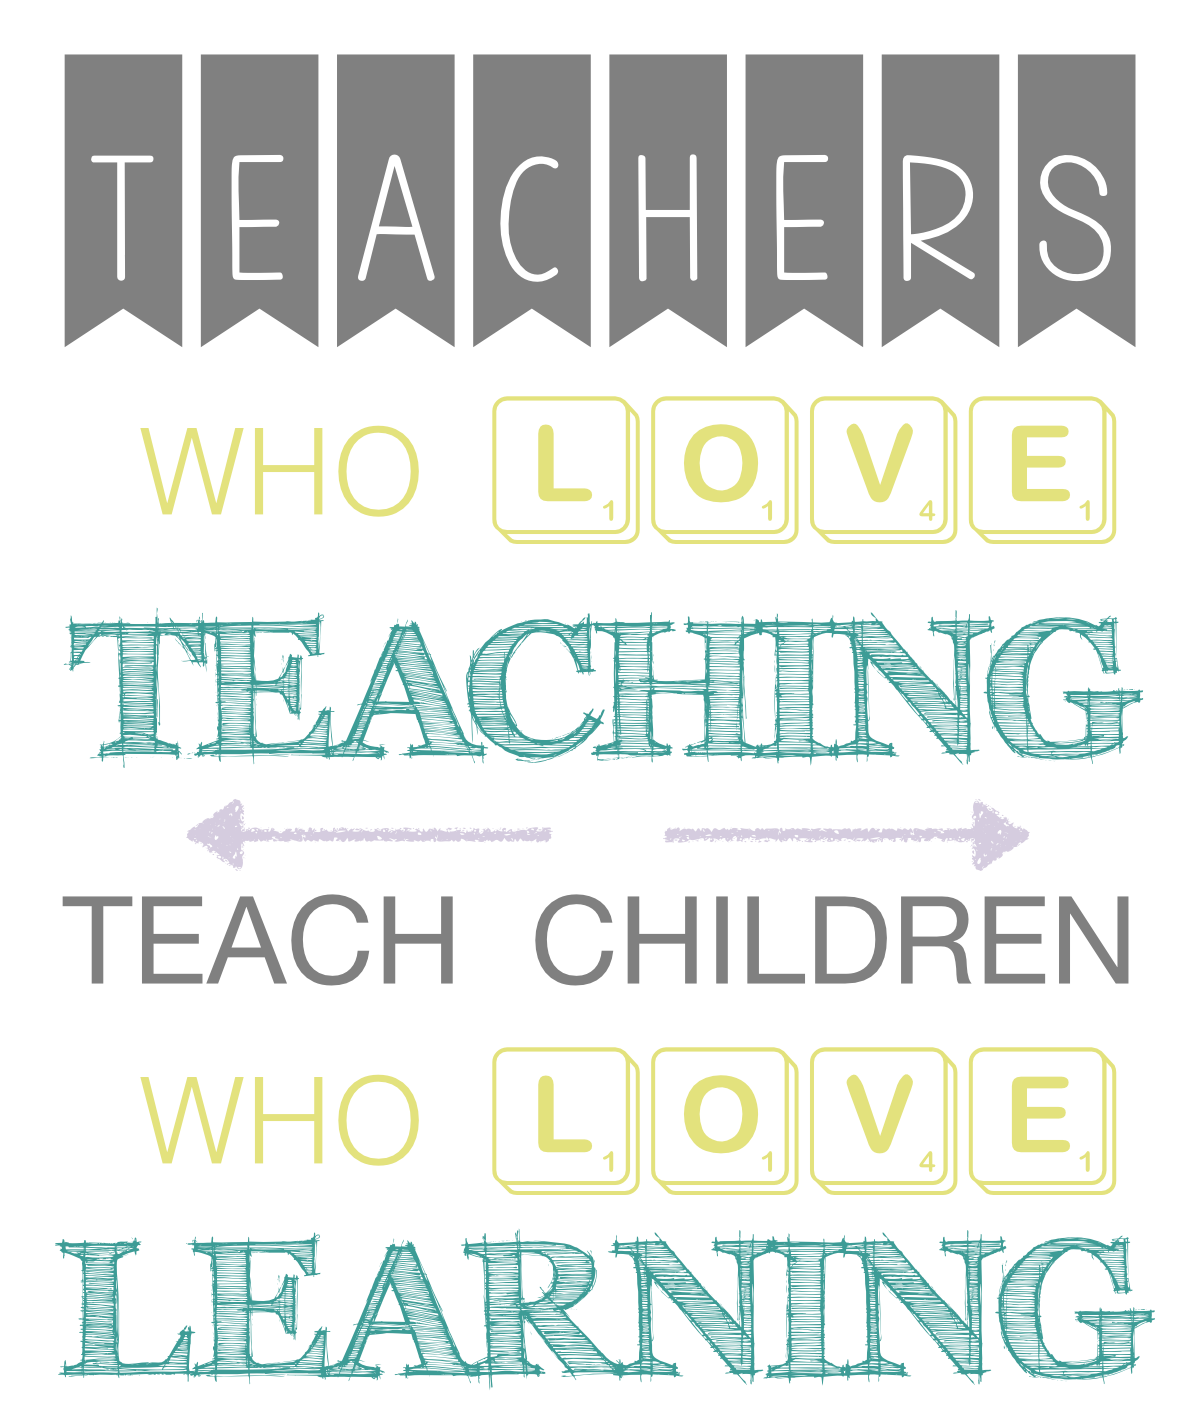 Educational Quotes For Teachers Amusing Inspiring Teacher Quotes